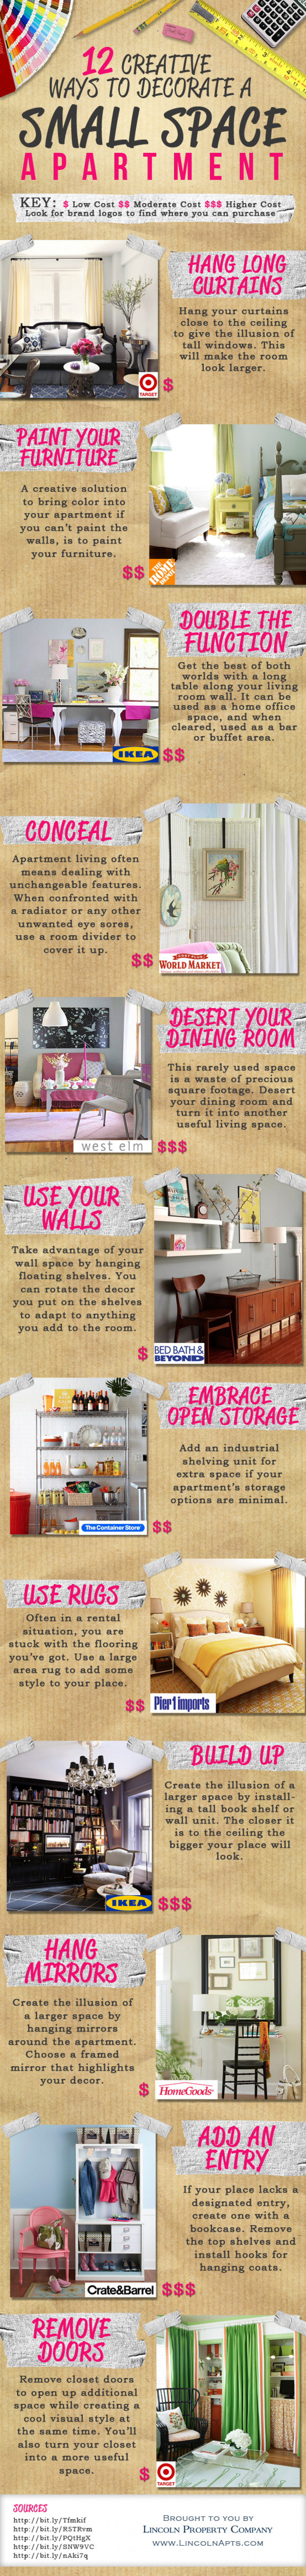 12 Creative Ways to Decorate a Small Space! Infographic